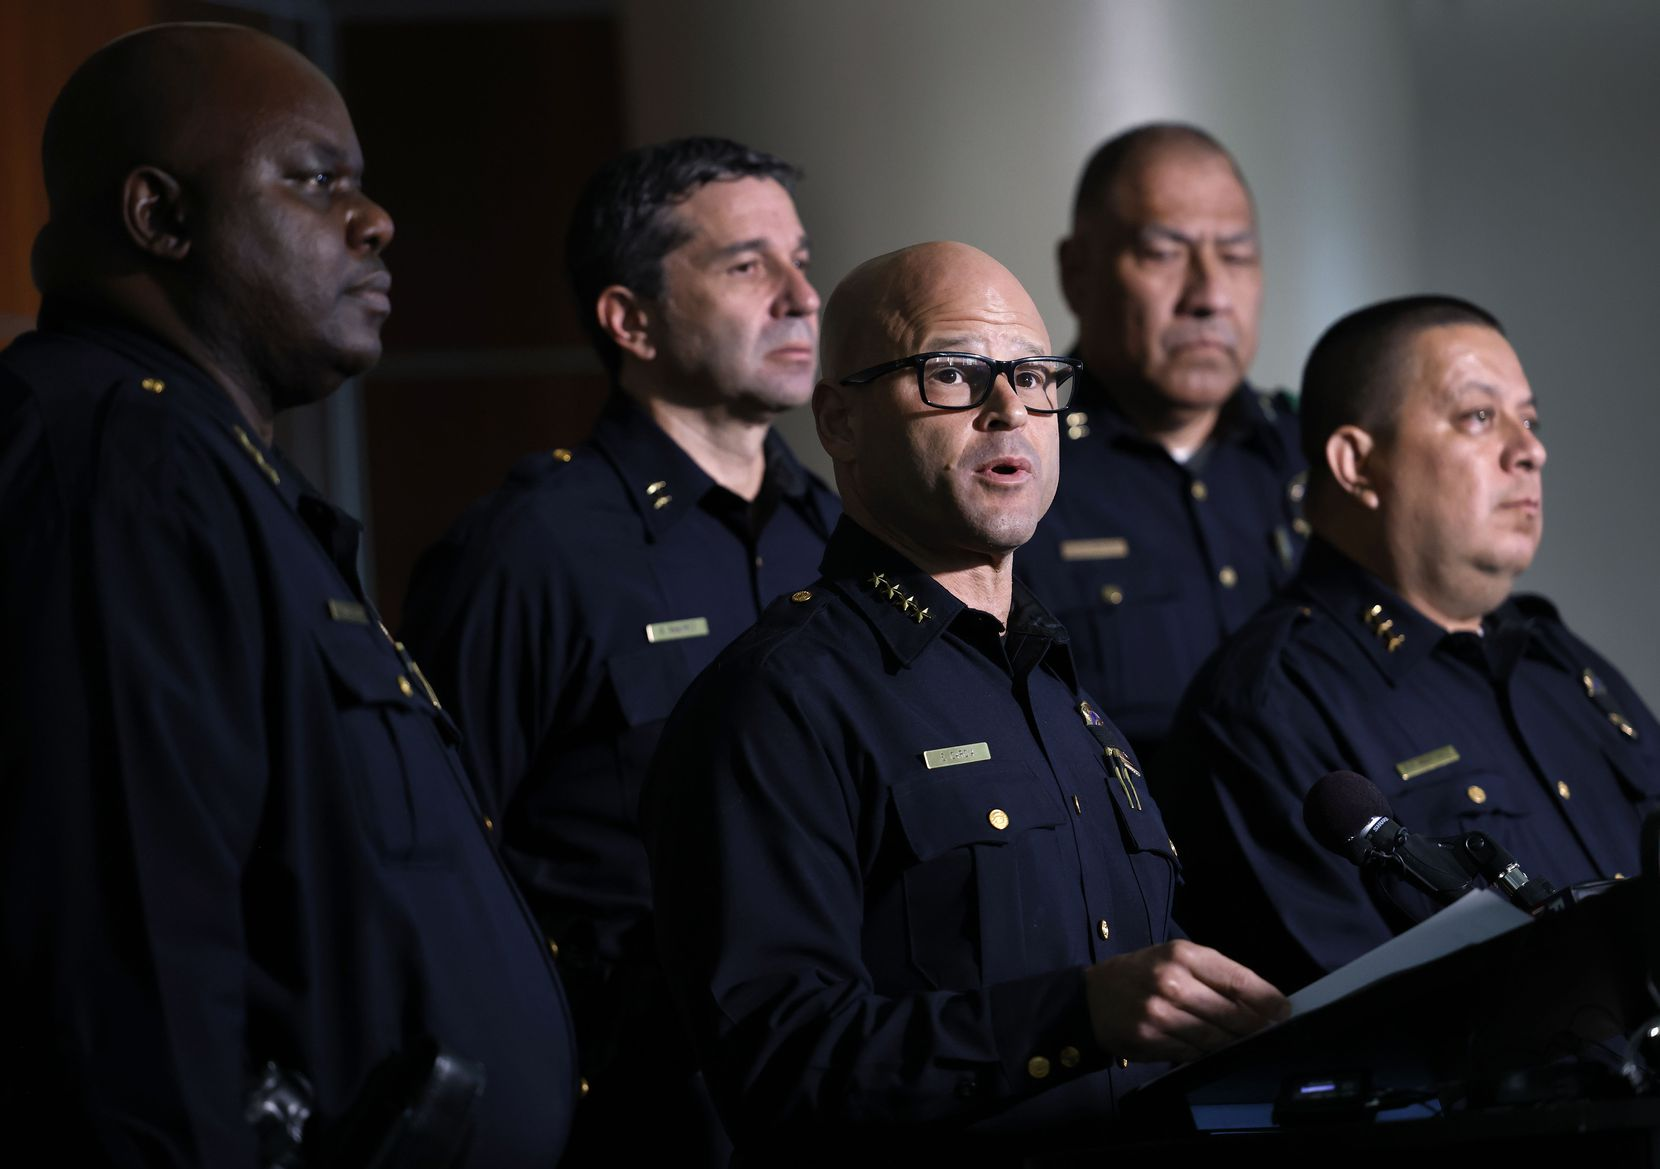 Dallas police Chief Eddie García delivered remarks about the arrest of Angela West, wife of Republican Texas gubernatorial candidate Allen West, during a news conference on Aug. 23, 2021.